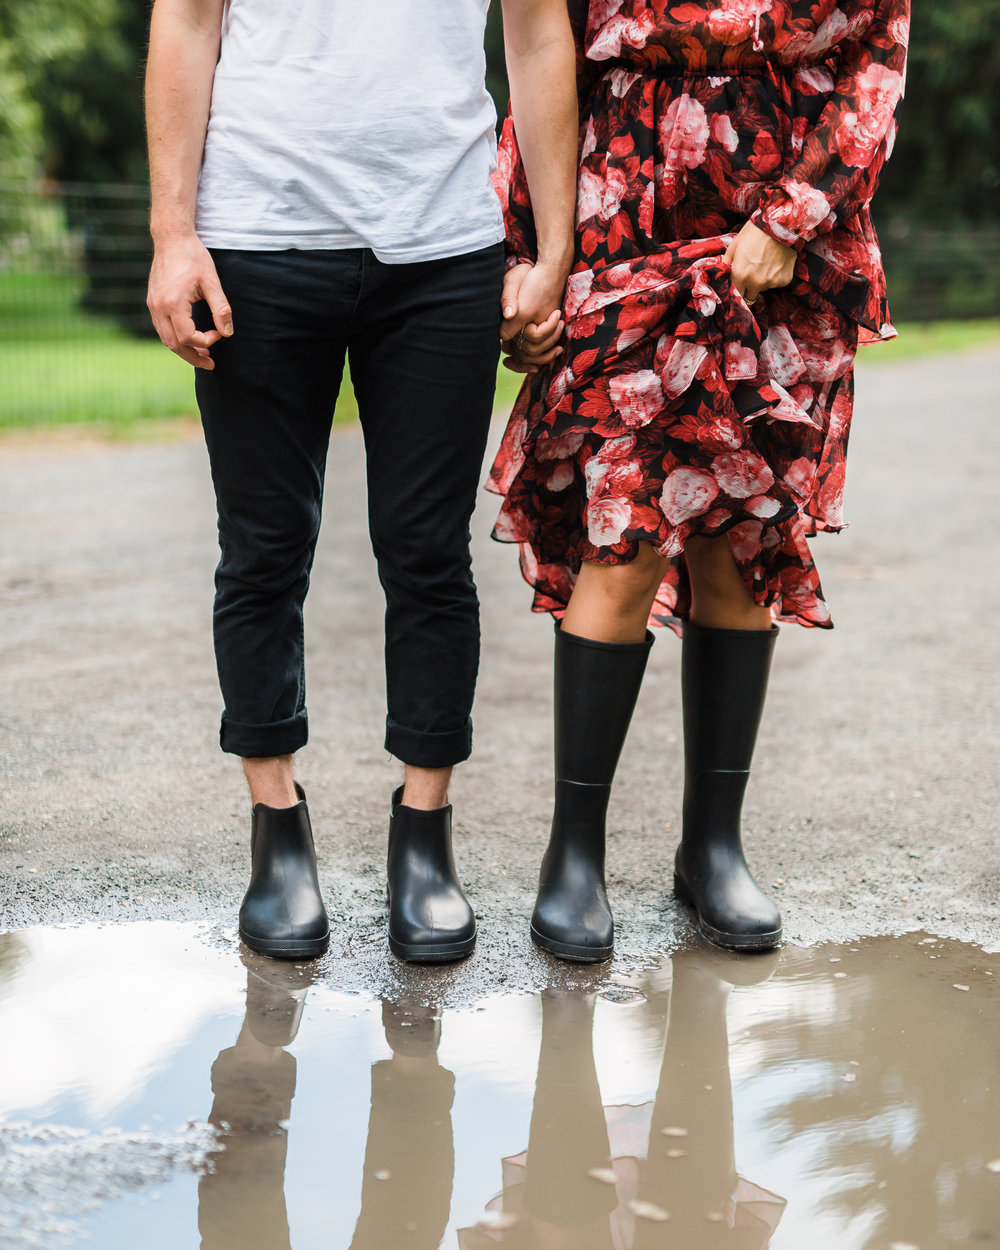 rain boots and puddle